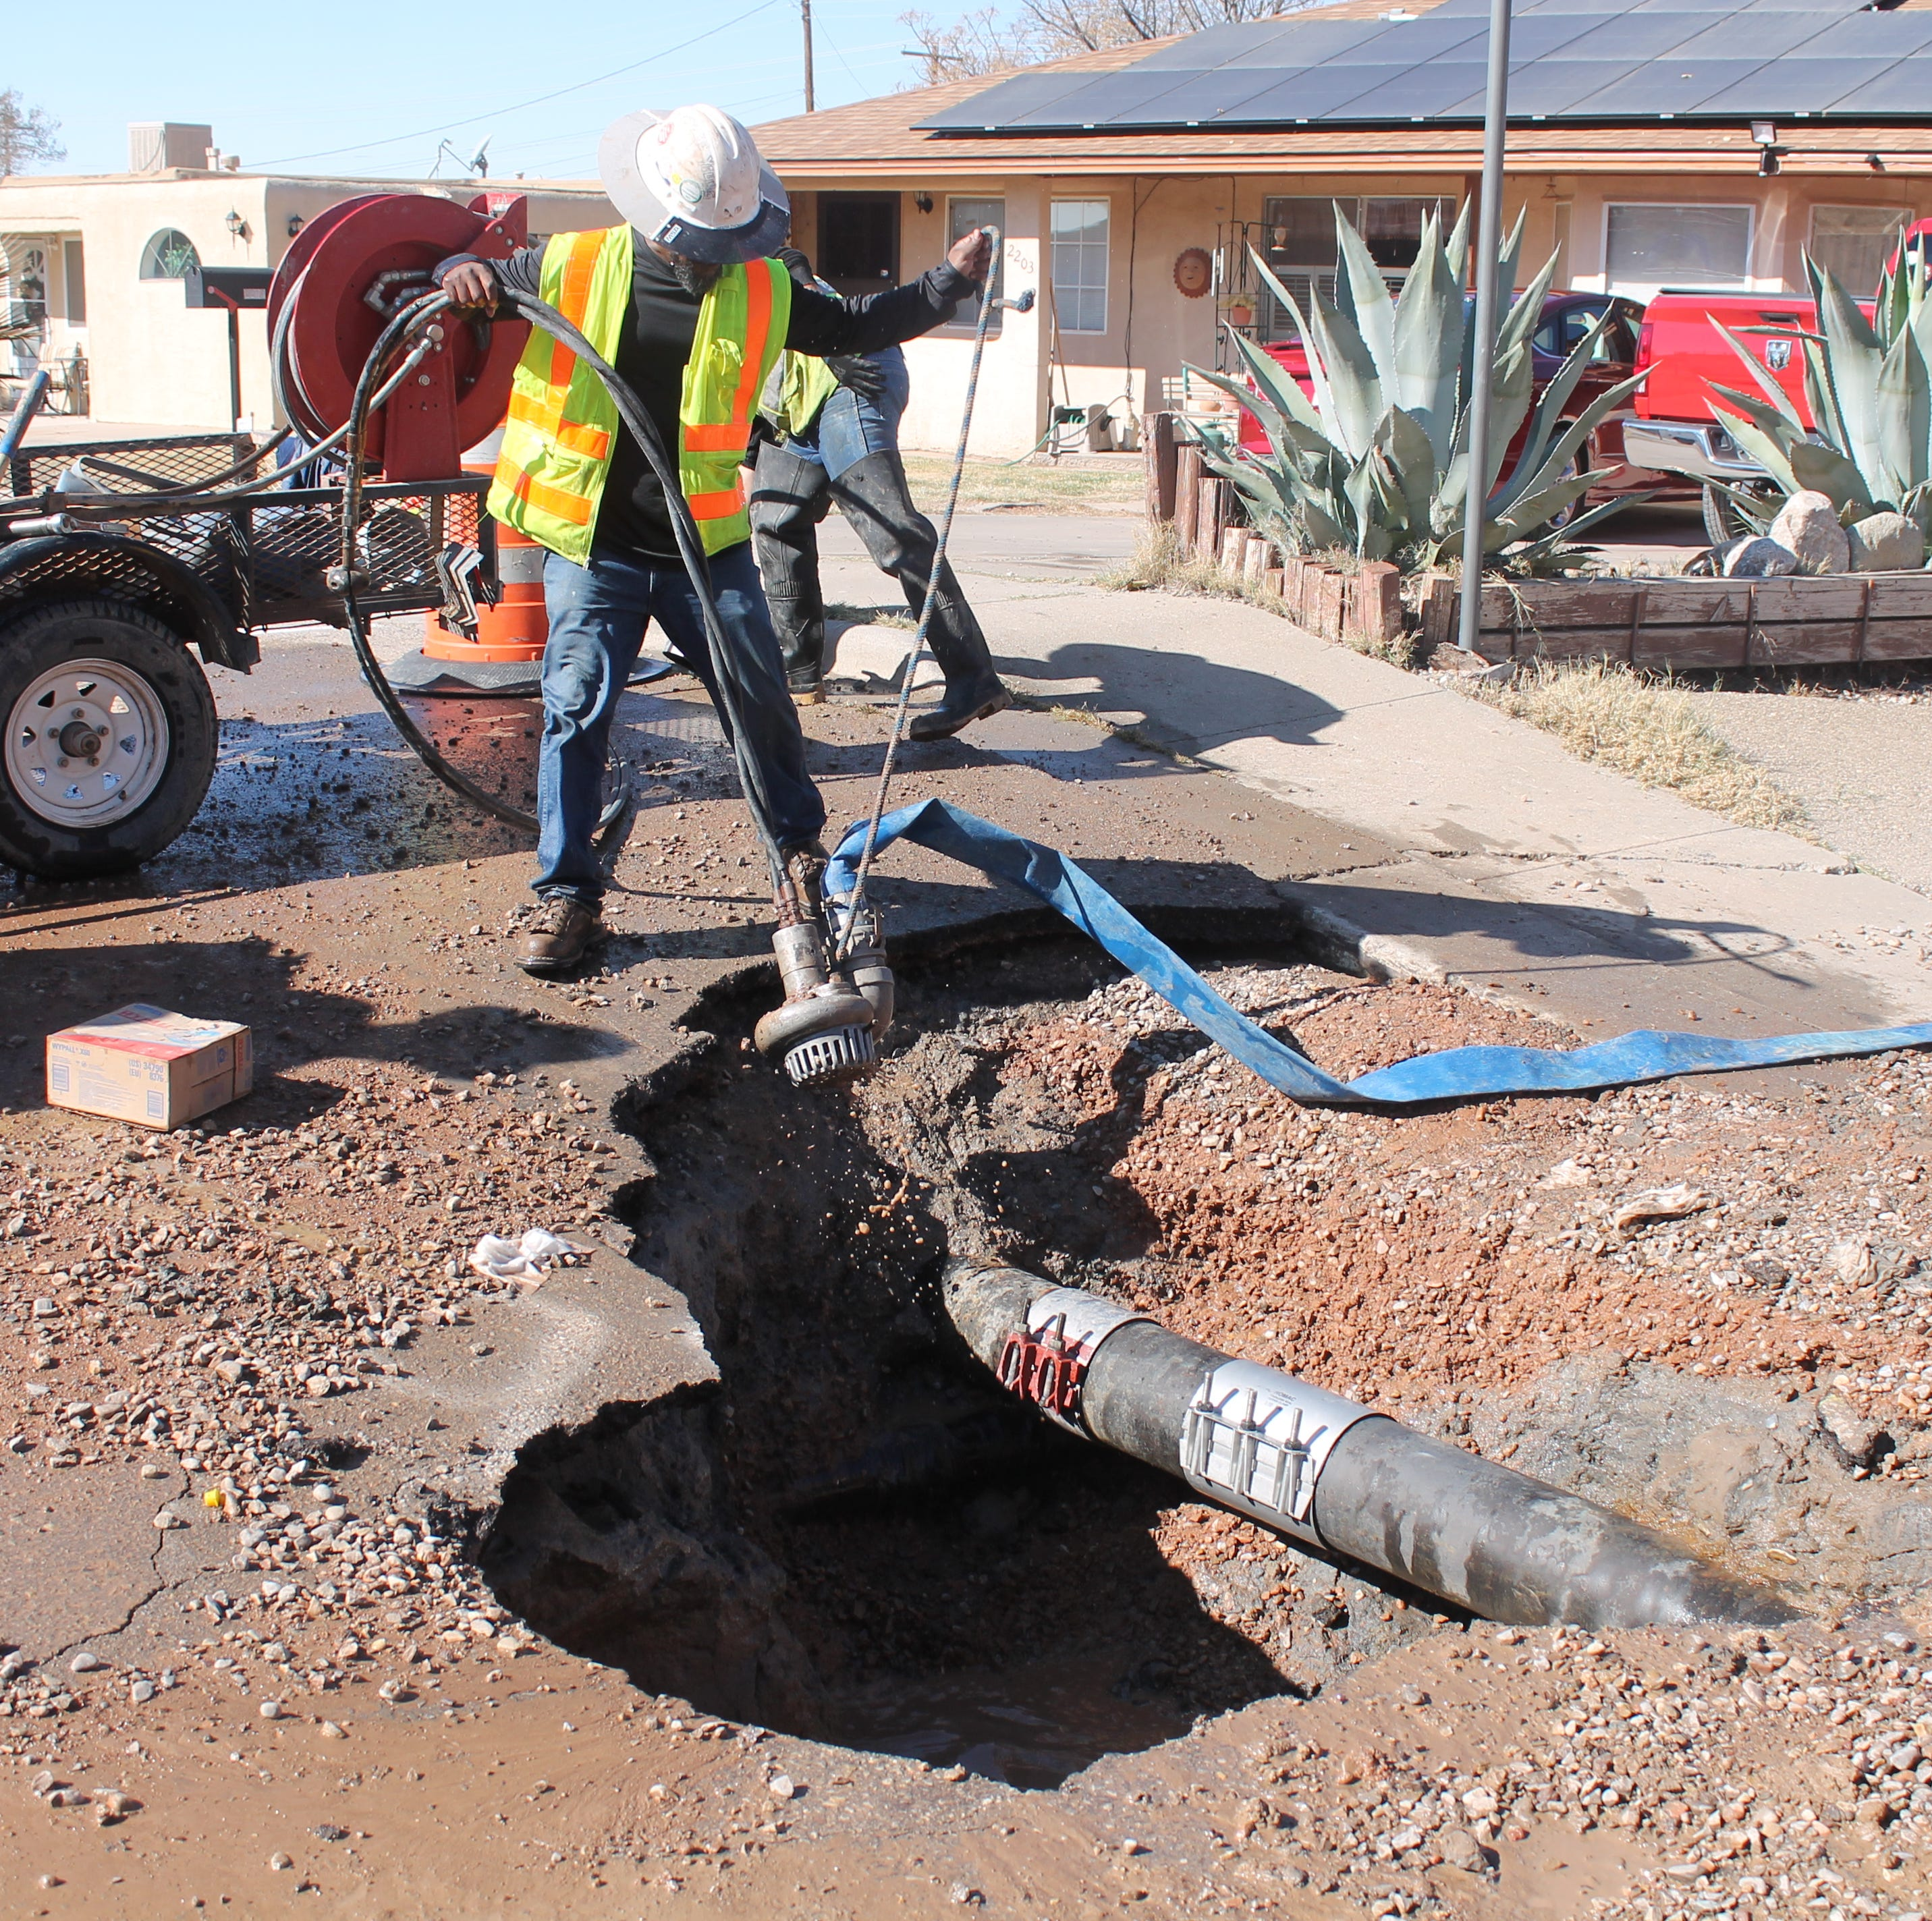 Temperature changes cause problems for water lines